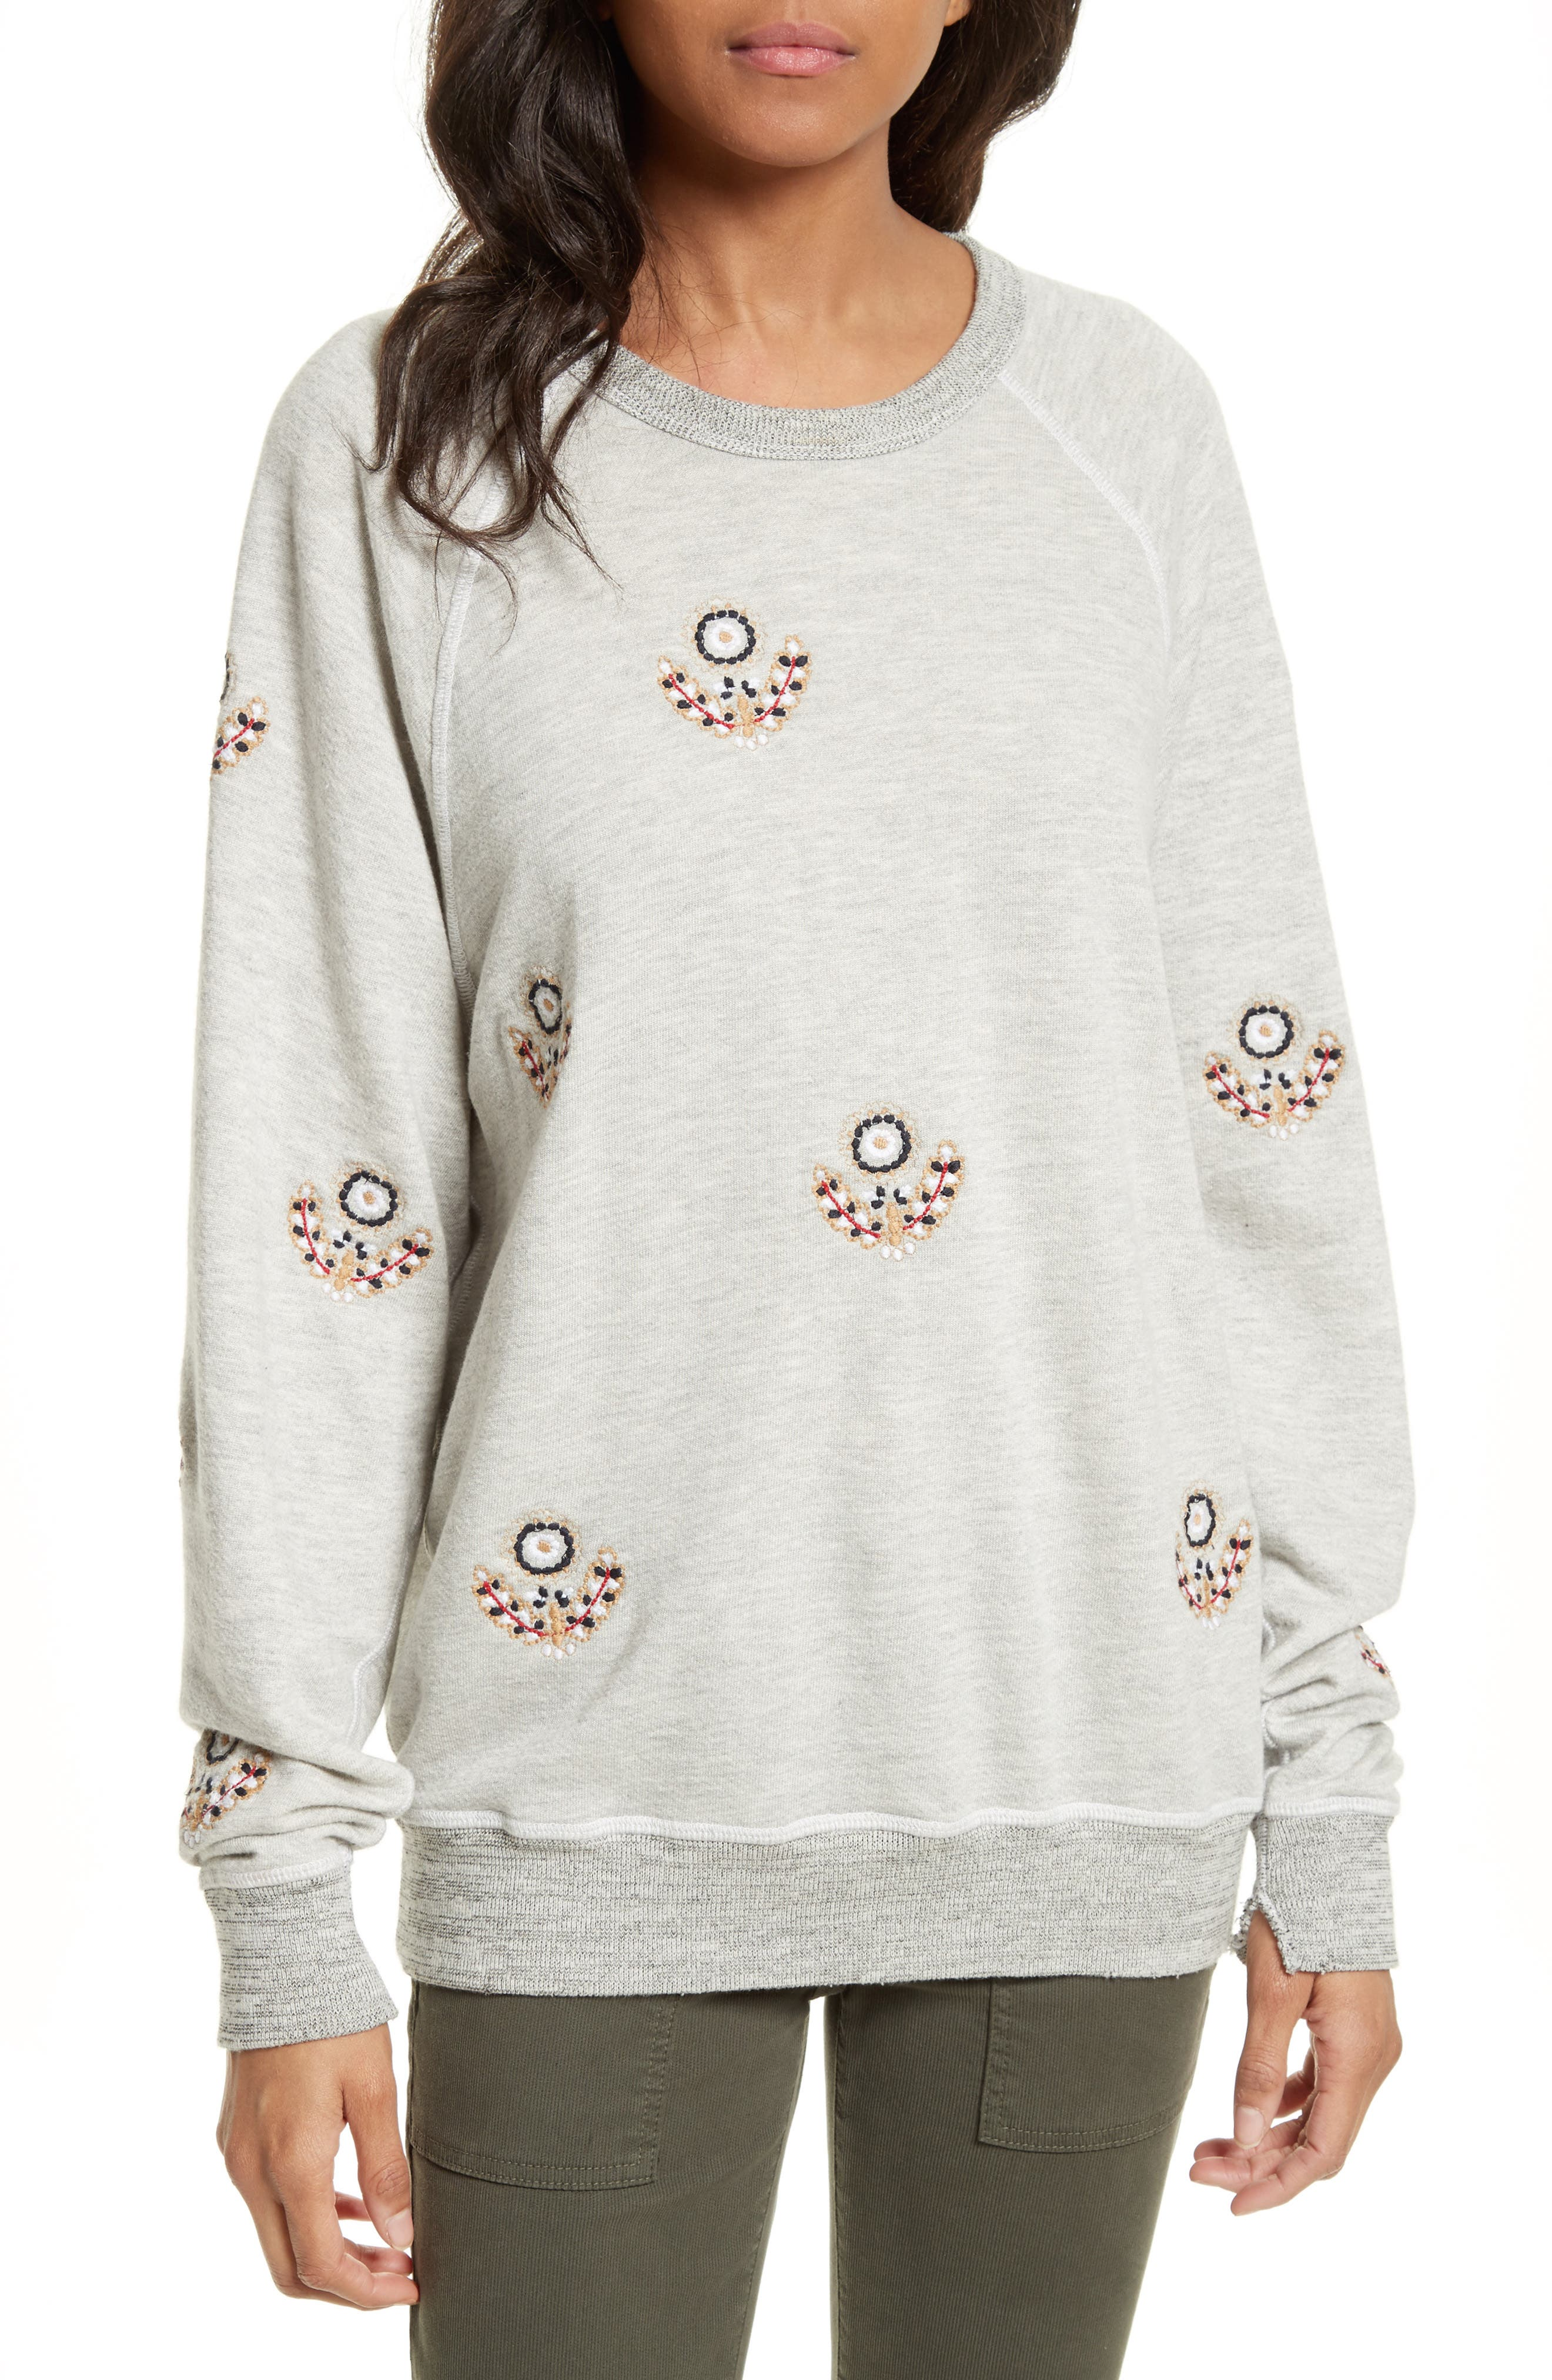 THE GREAT. The College Embroidered Sweatshirt